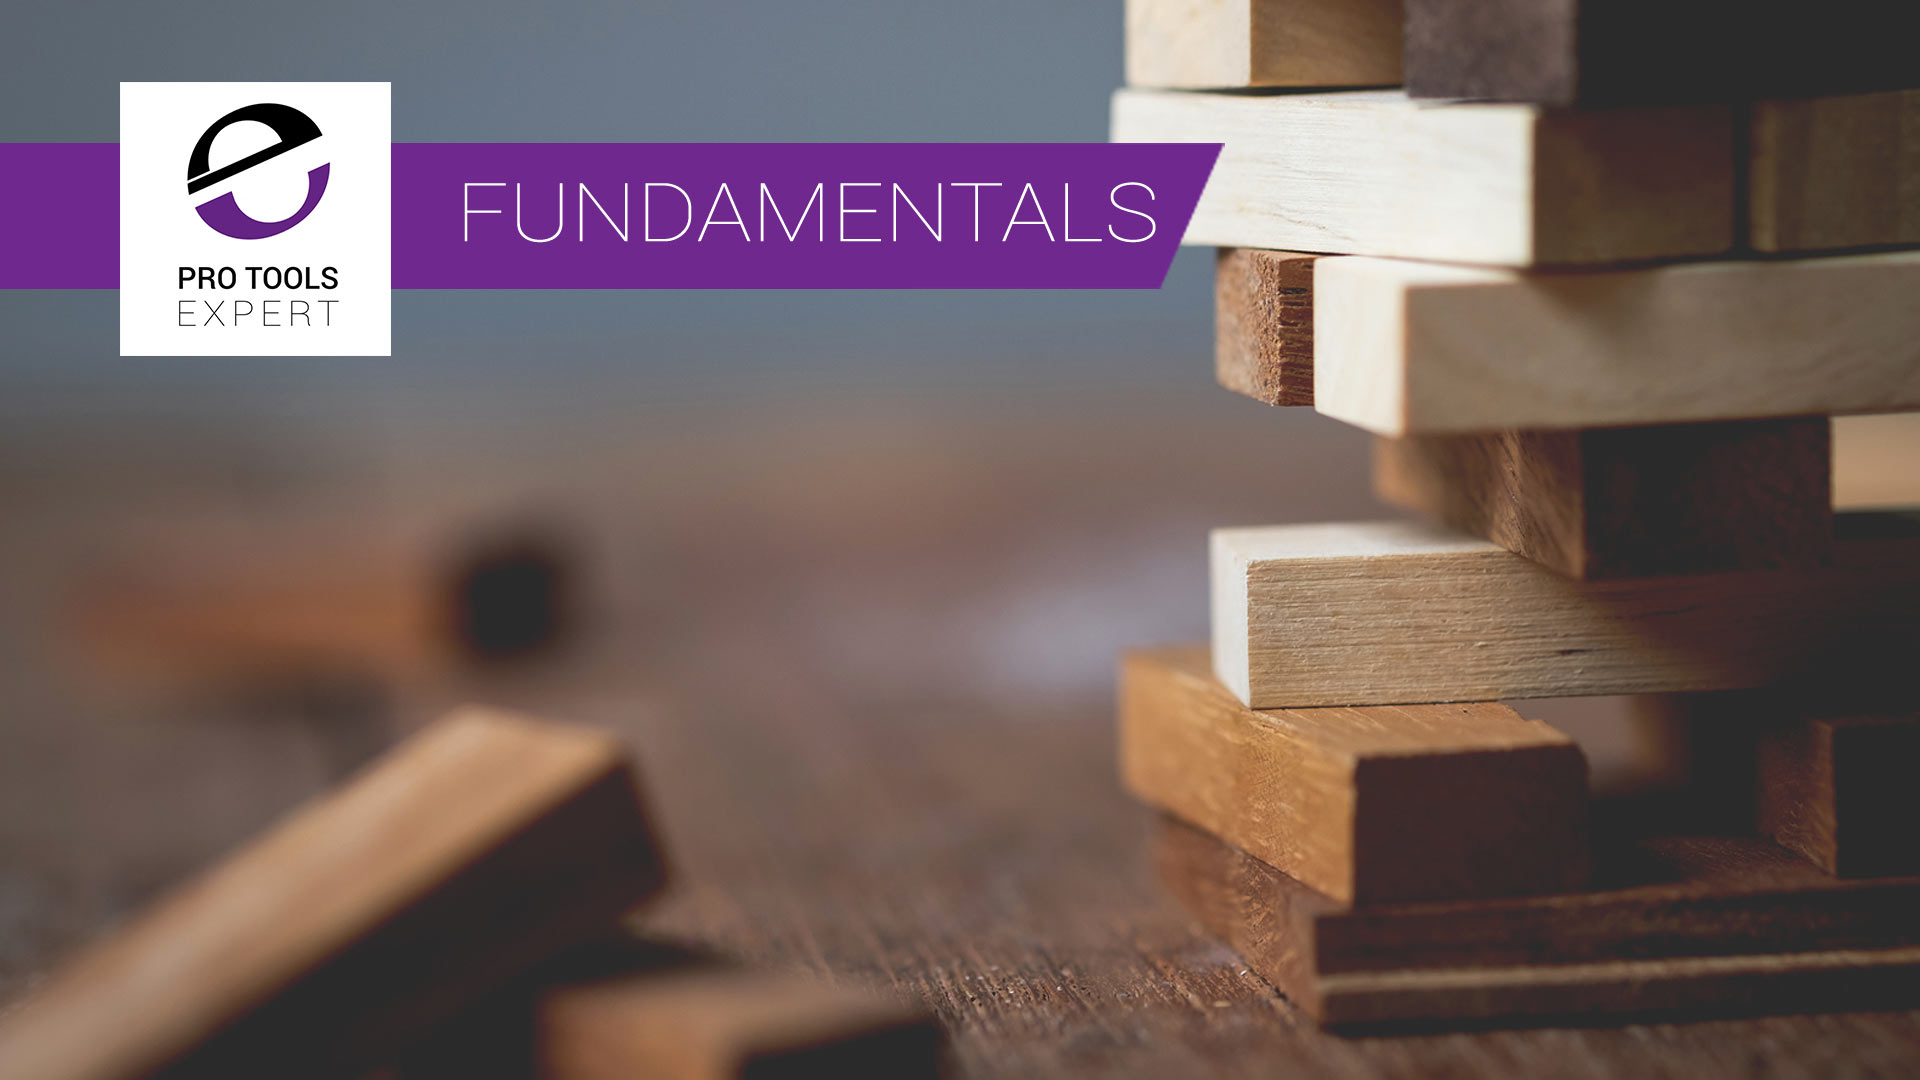 5 Pro Tools Fundamentals - If You Don't Know Them Then Learn Them First